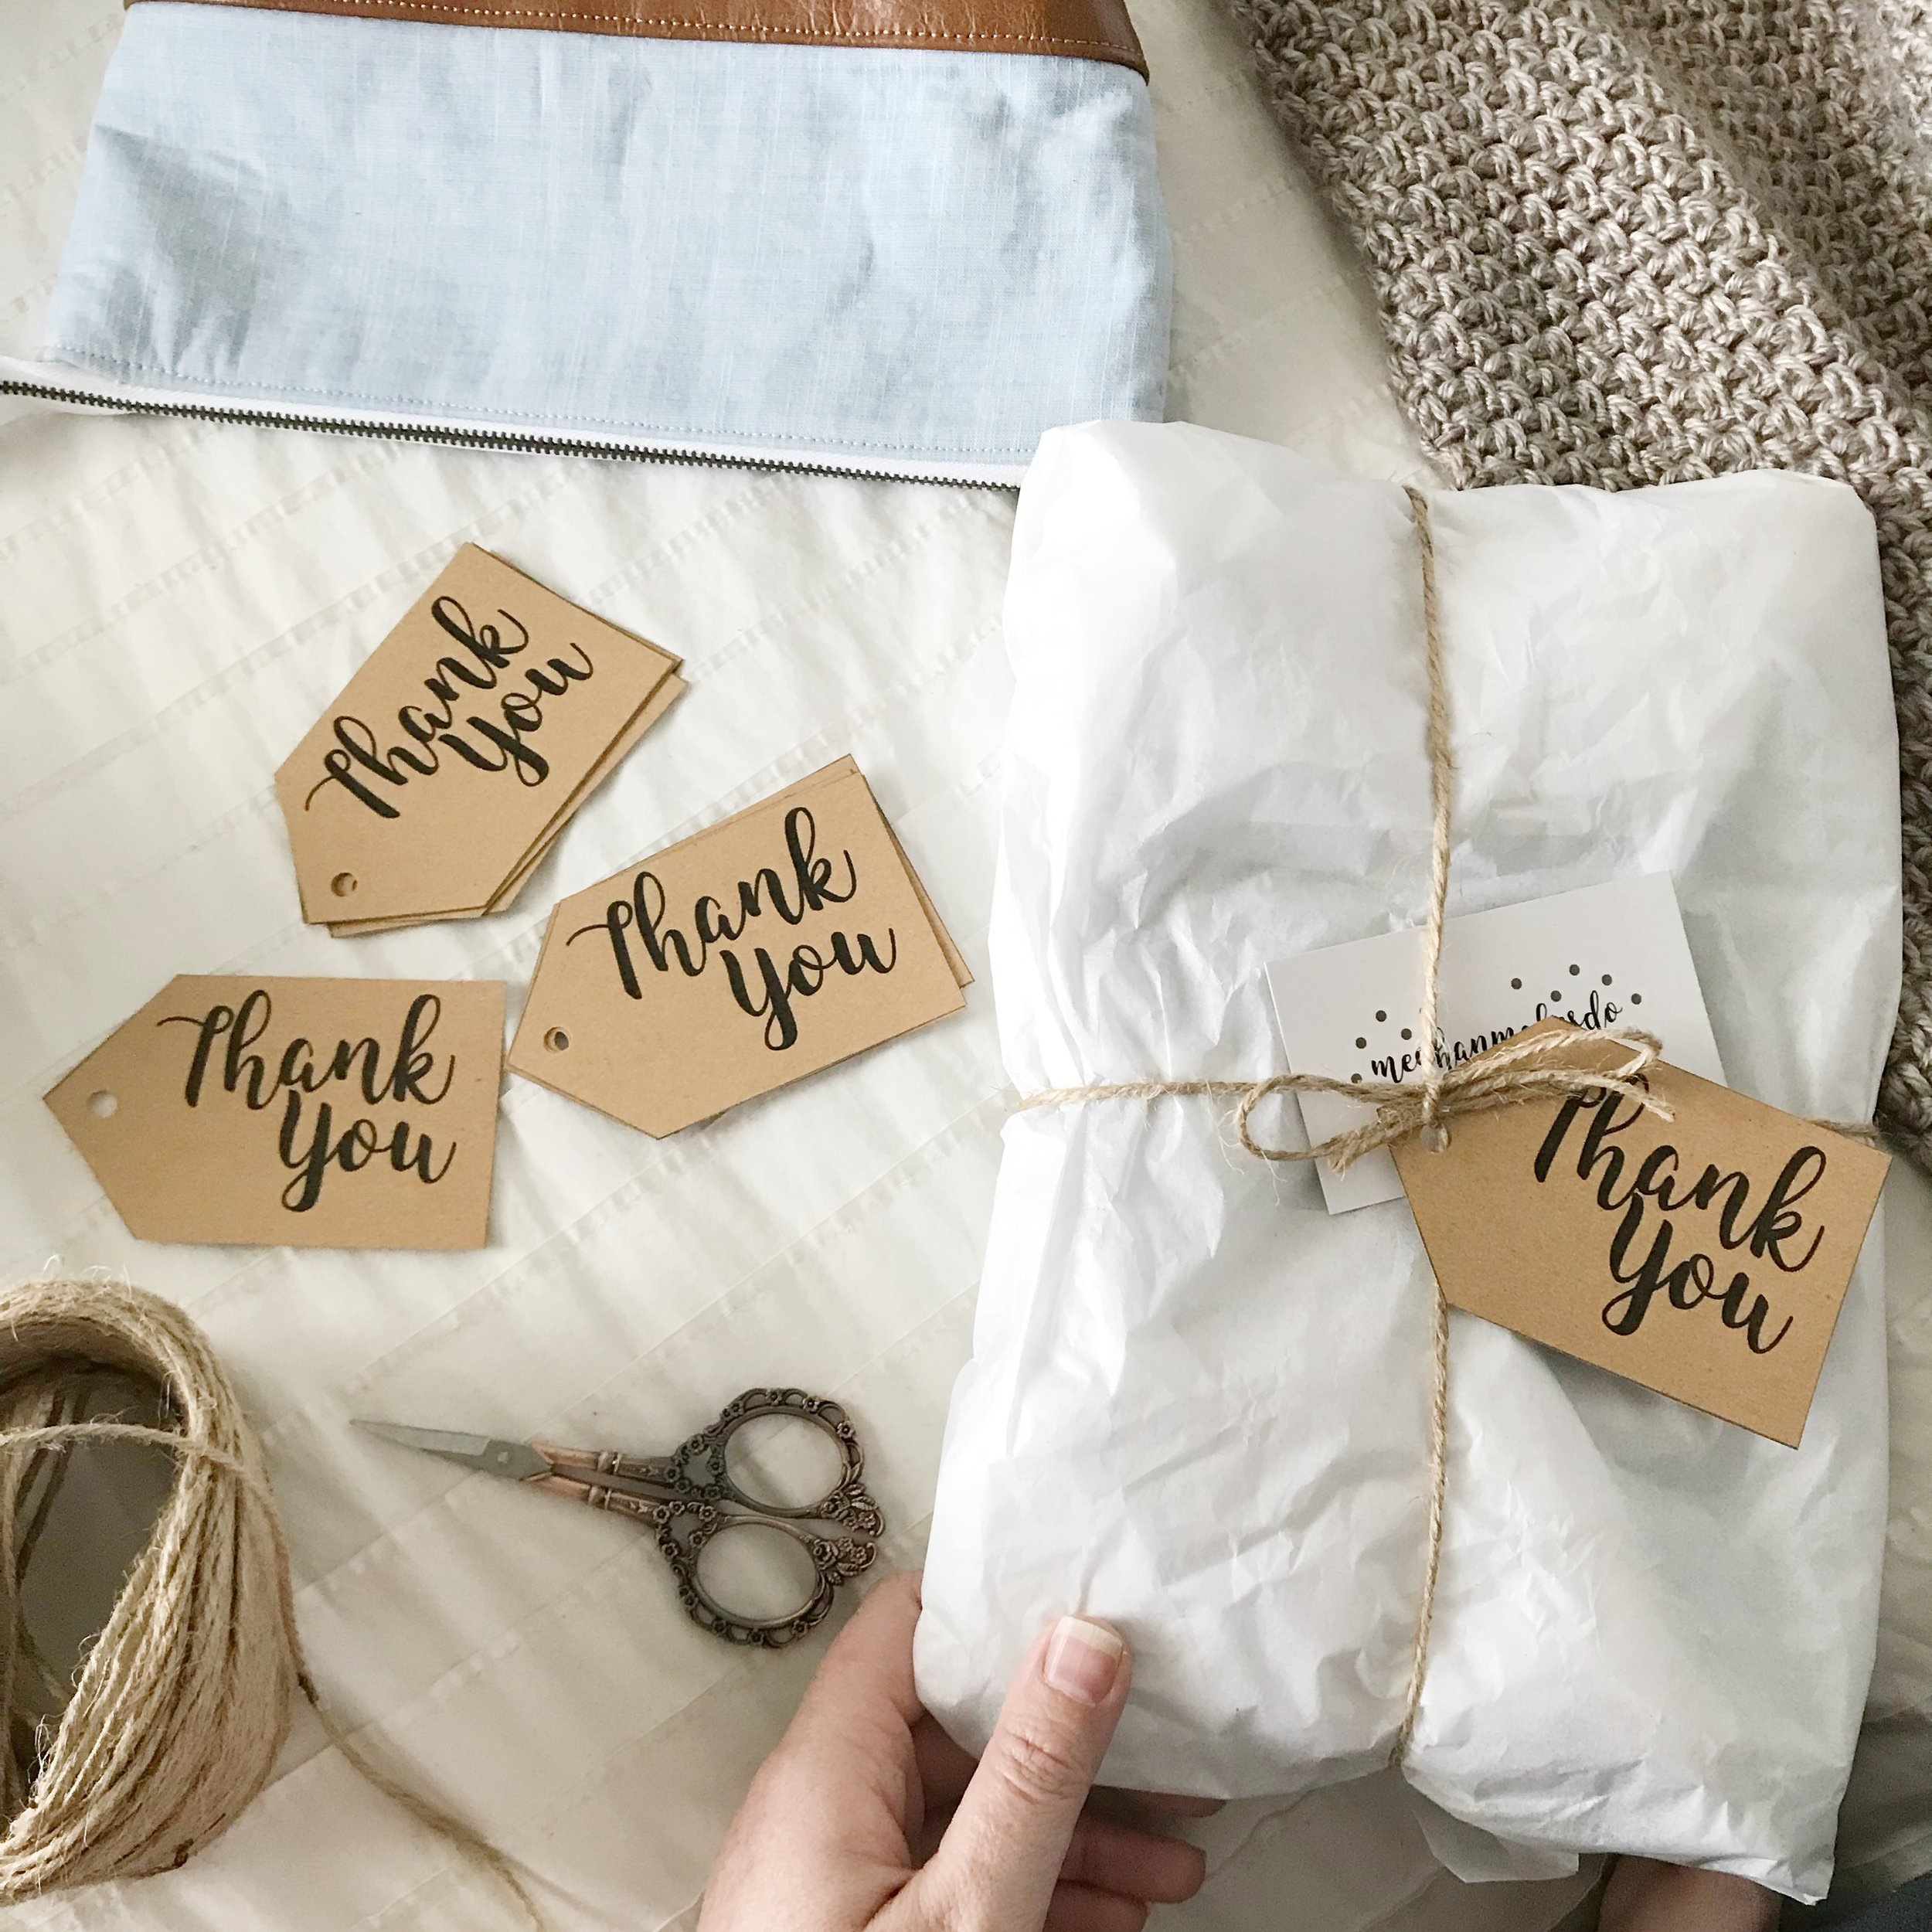 This is an image of Thank You Tag Free Printable with boyfriend